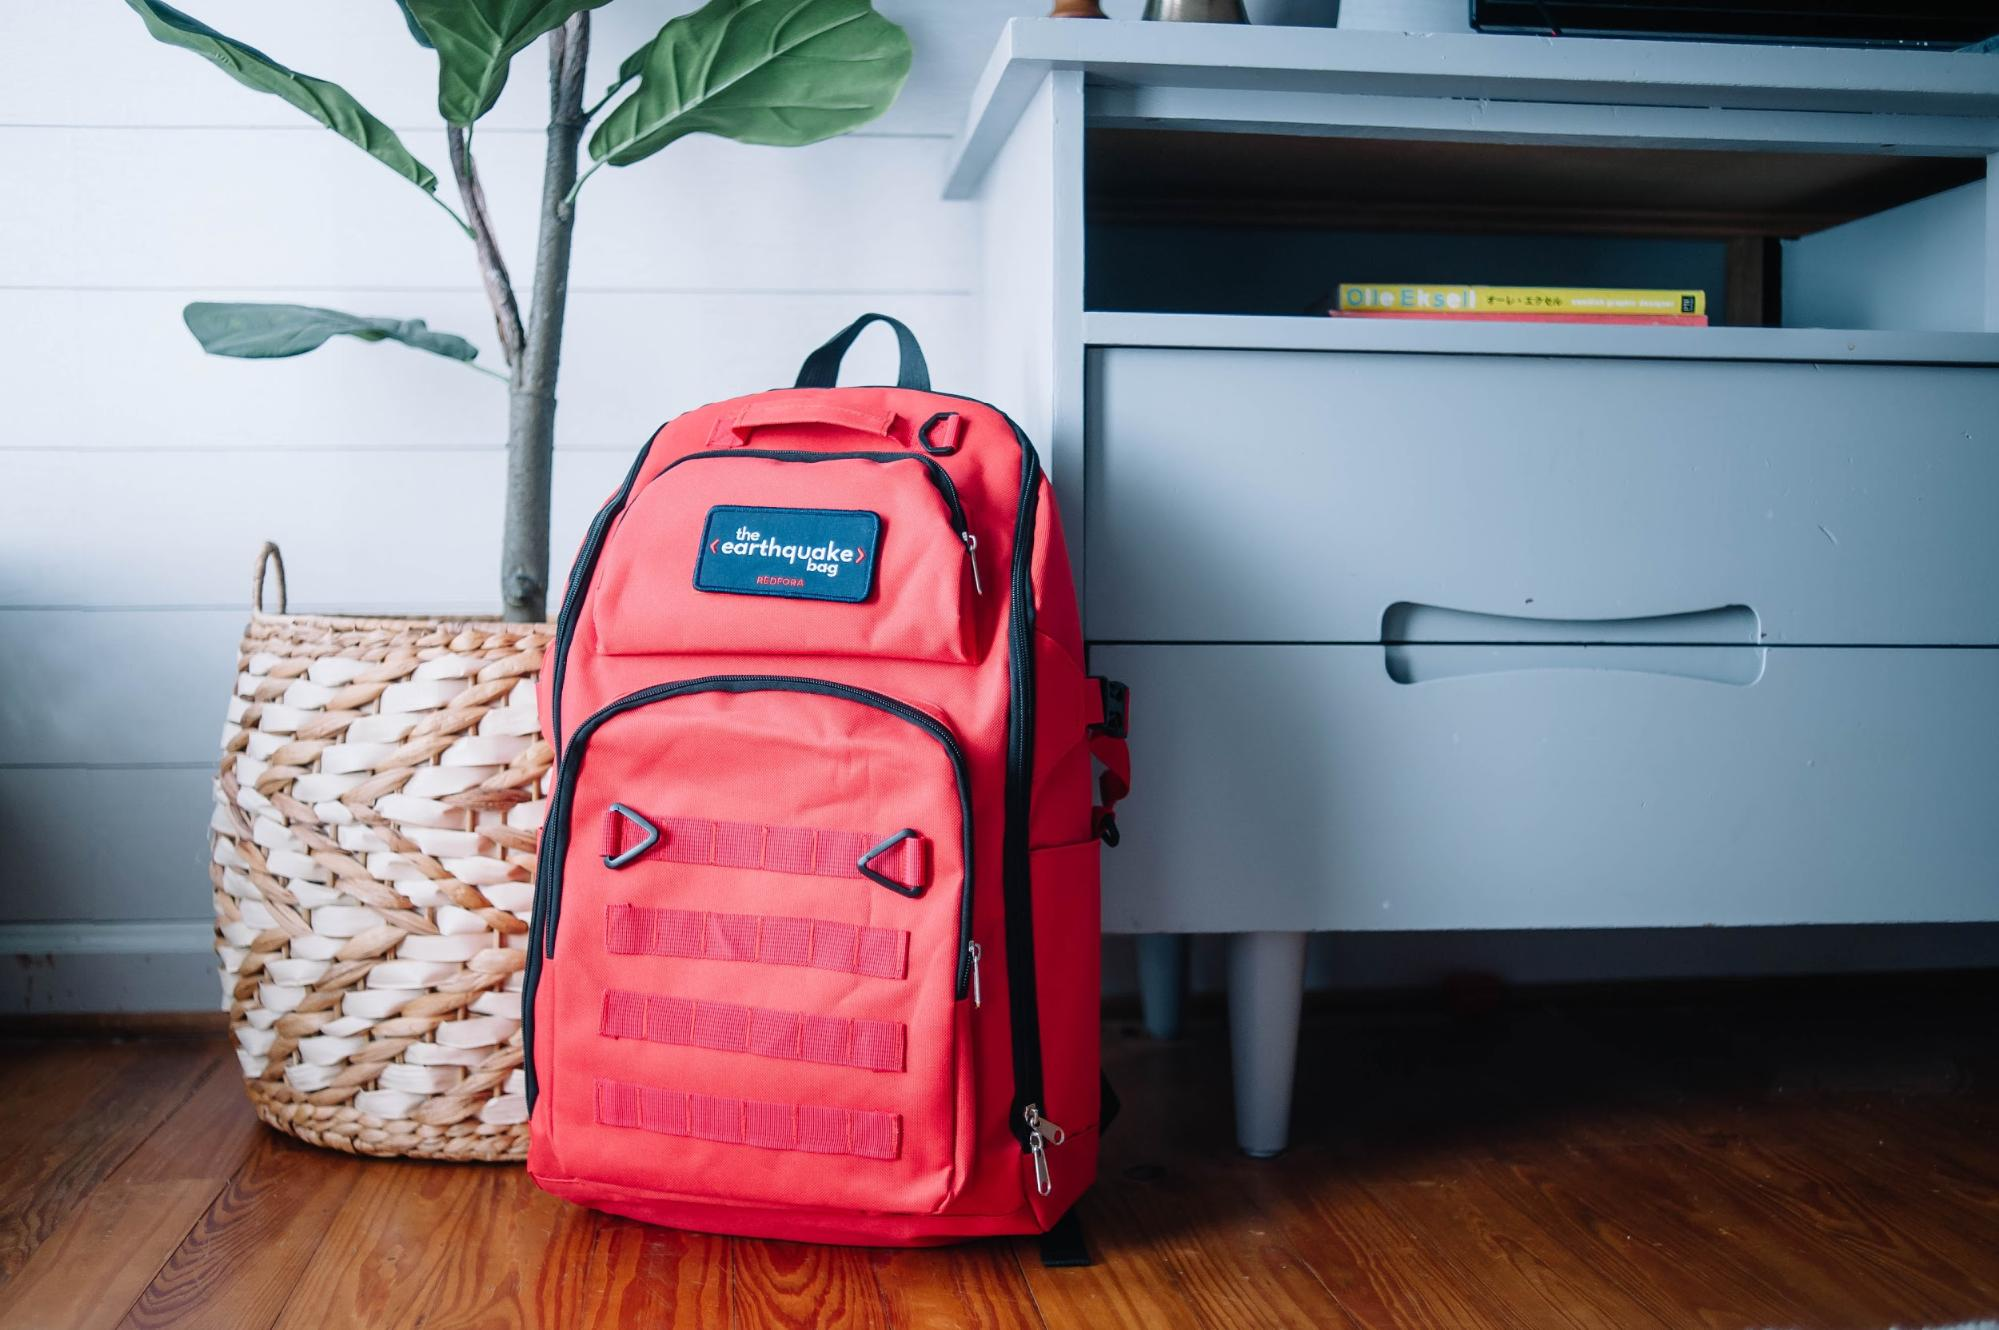 A Redfora earthquake preparedness backpack is backdropped by an end table and plant.